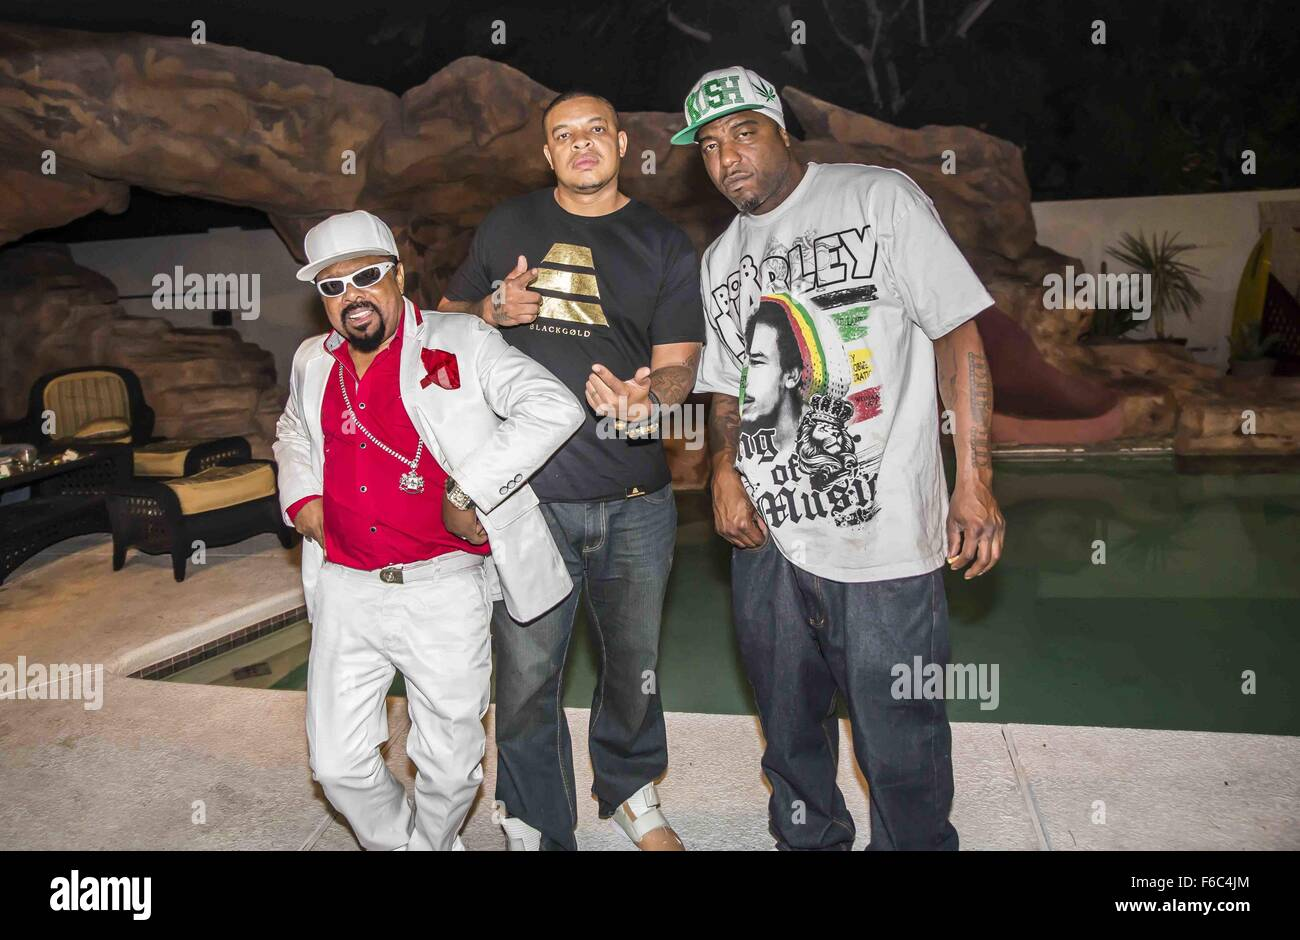 curtis young bay area based rapper spice 1 and parliament stock